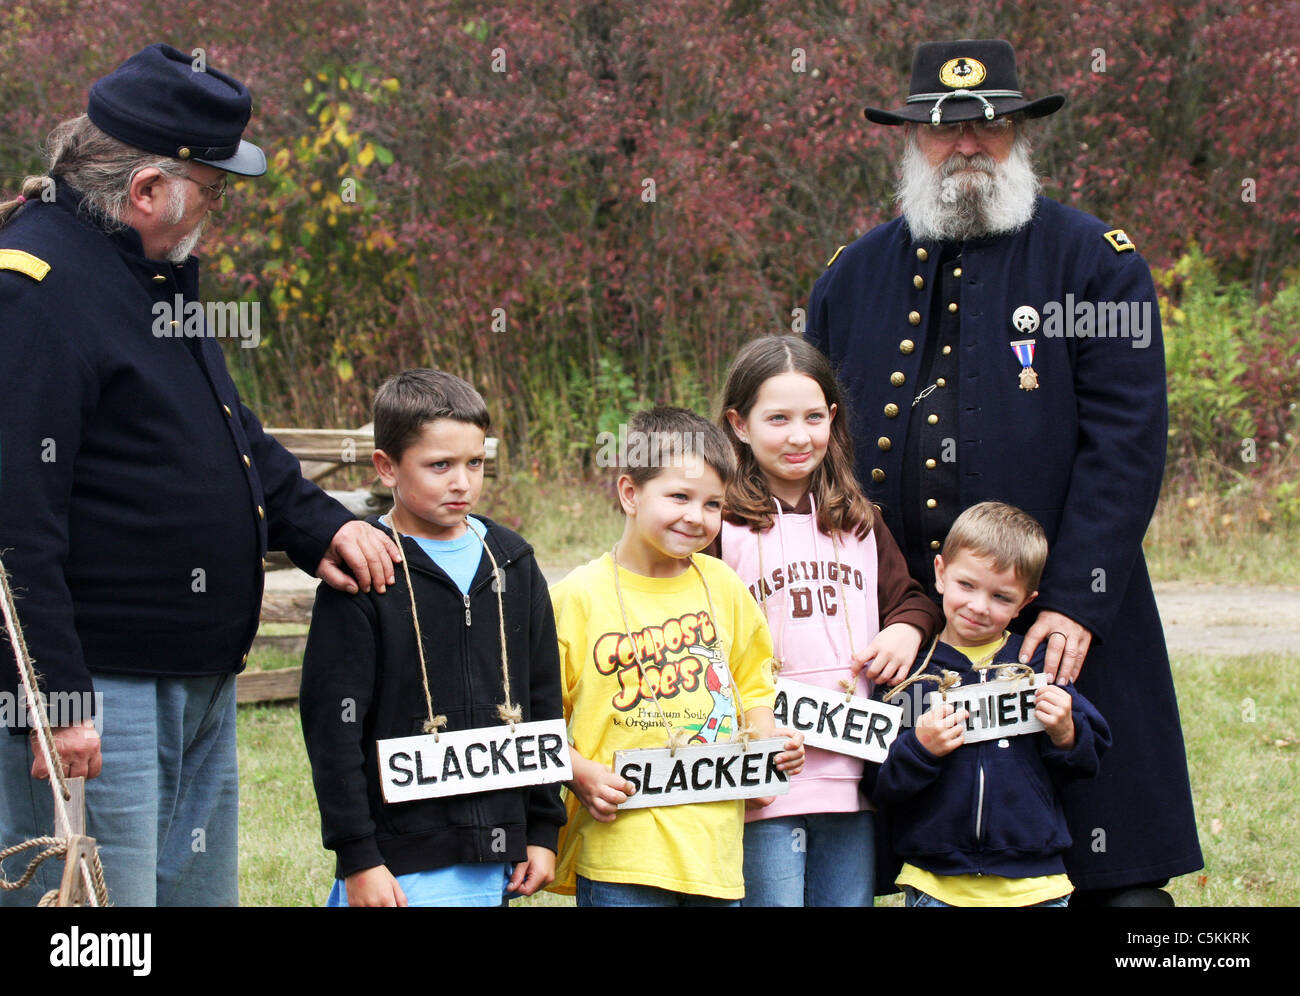 Two Union soldiers holding young children under arrest wearing signs of their sins such as slacker and thief - Stock Image